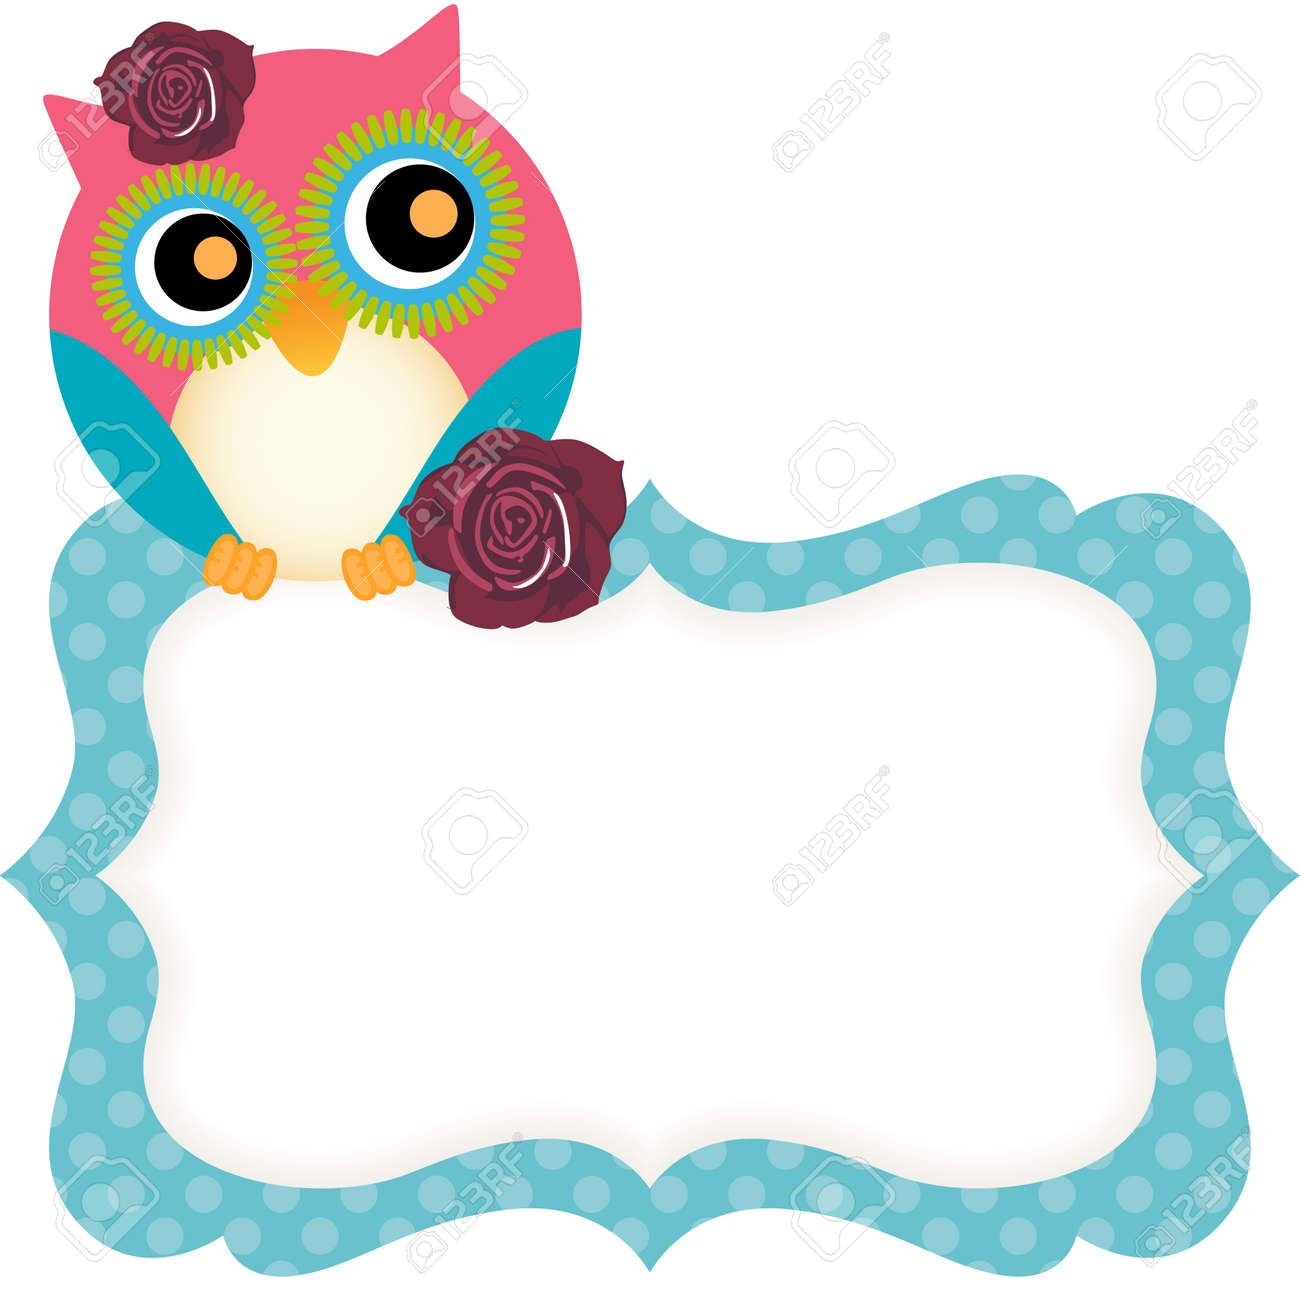 Cute Owl Tag Royalty Free Cliparts, Vectors, And Stock Illustration ...